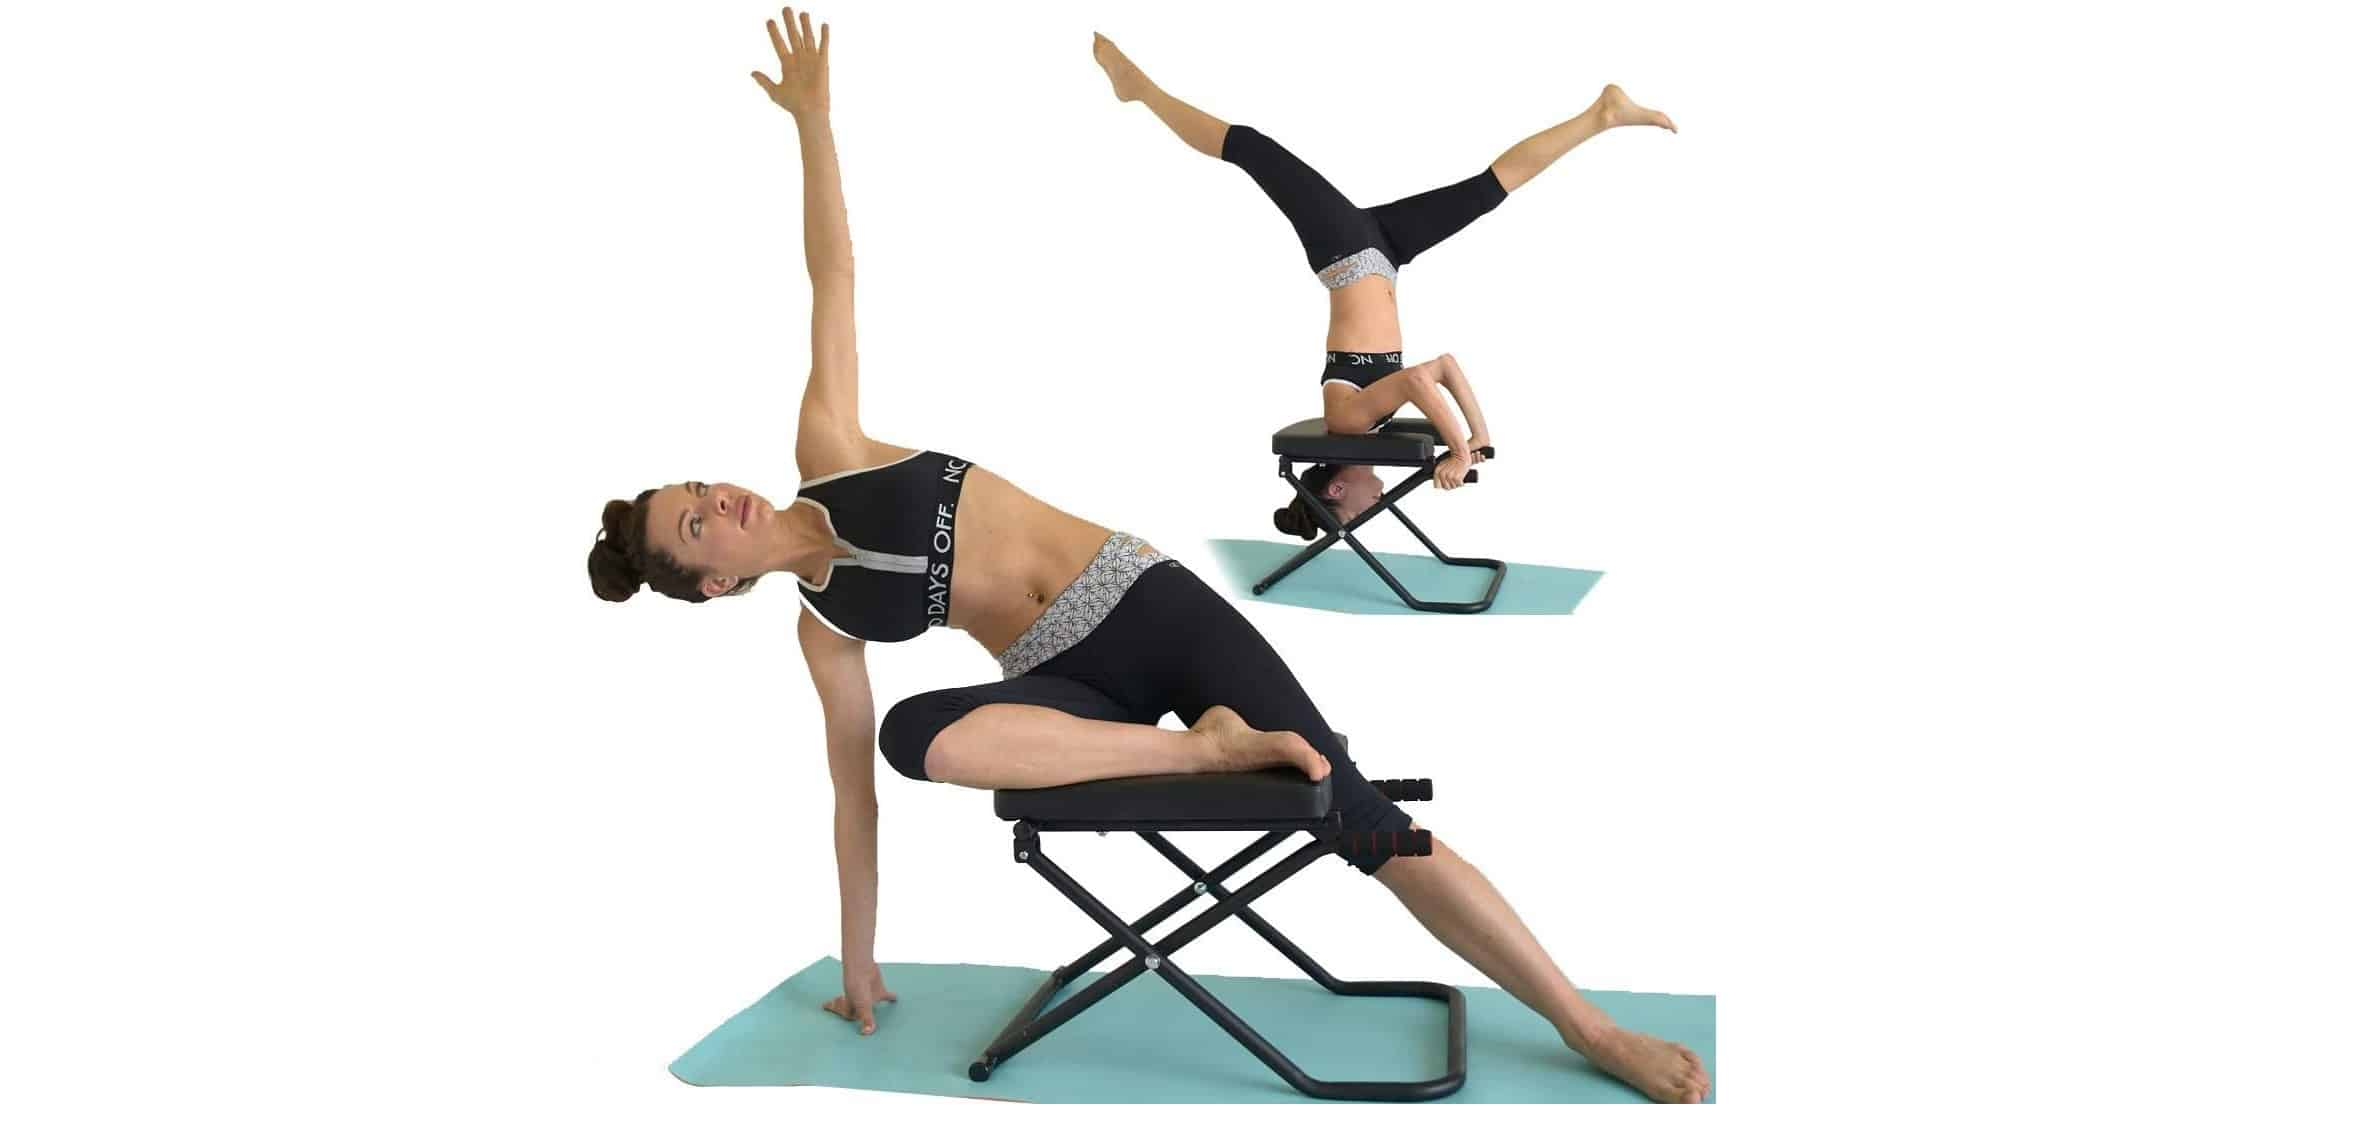 WonderView Accesory for Yoga Chair